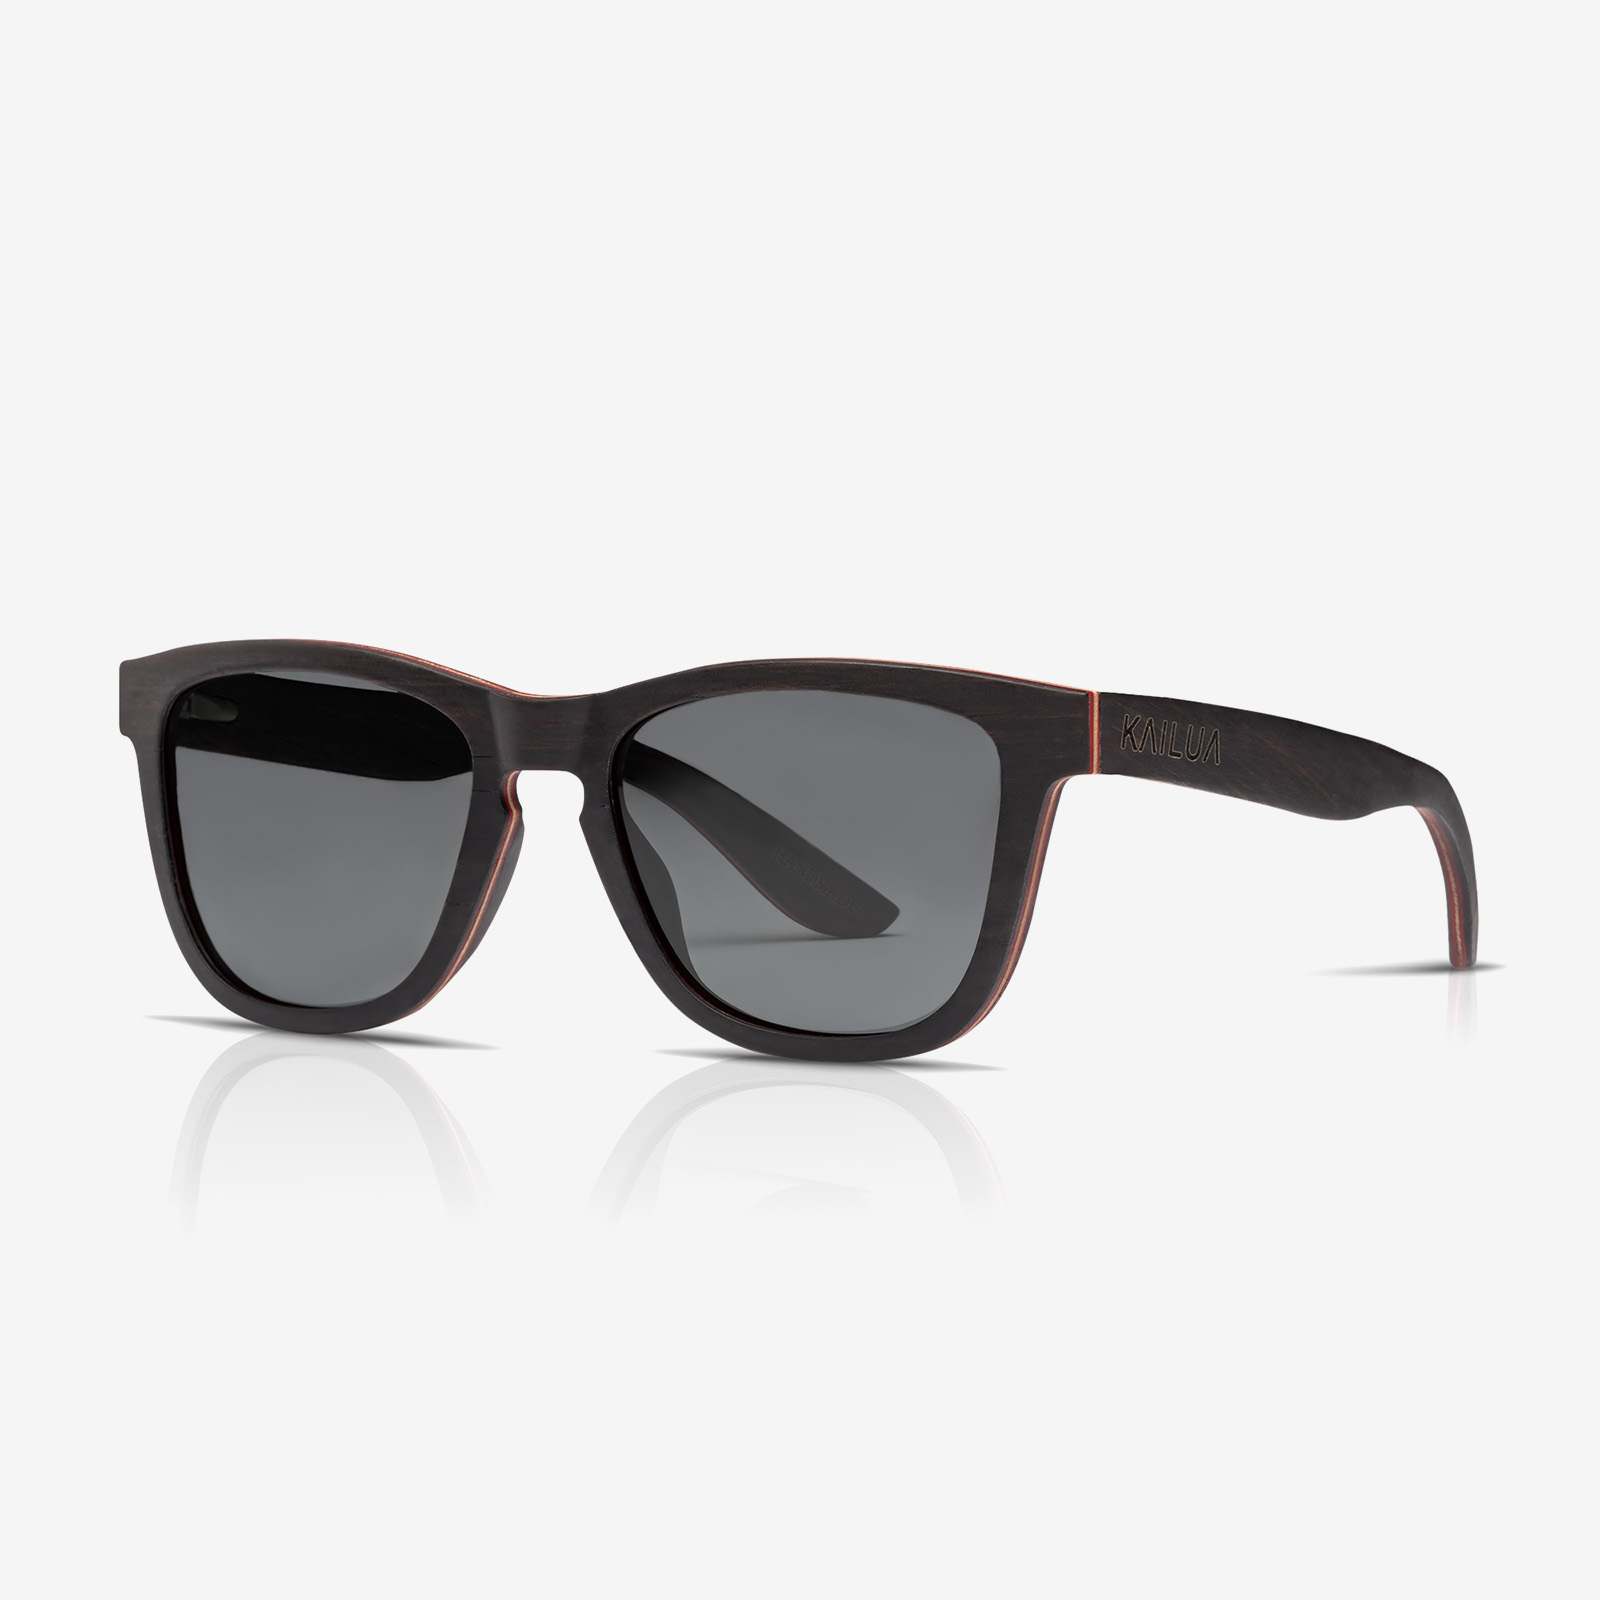 sunglasses product photo, spectacles product photo, glasses product photo, sunglass product photo